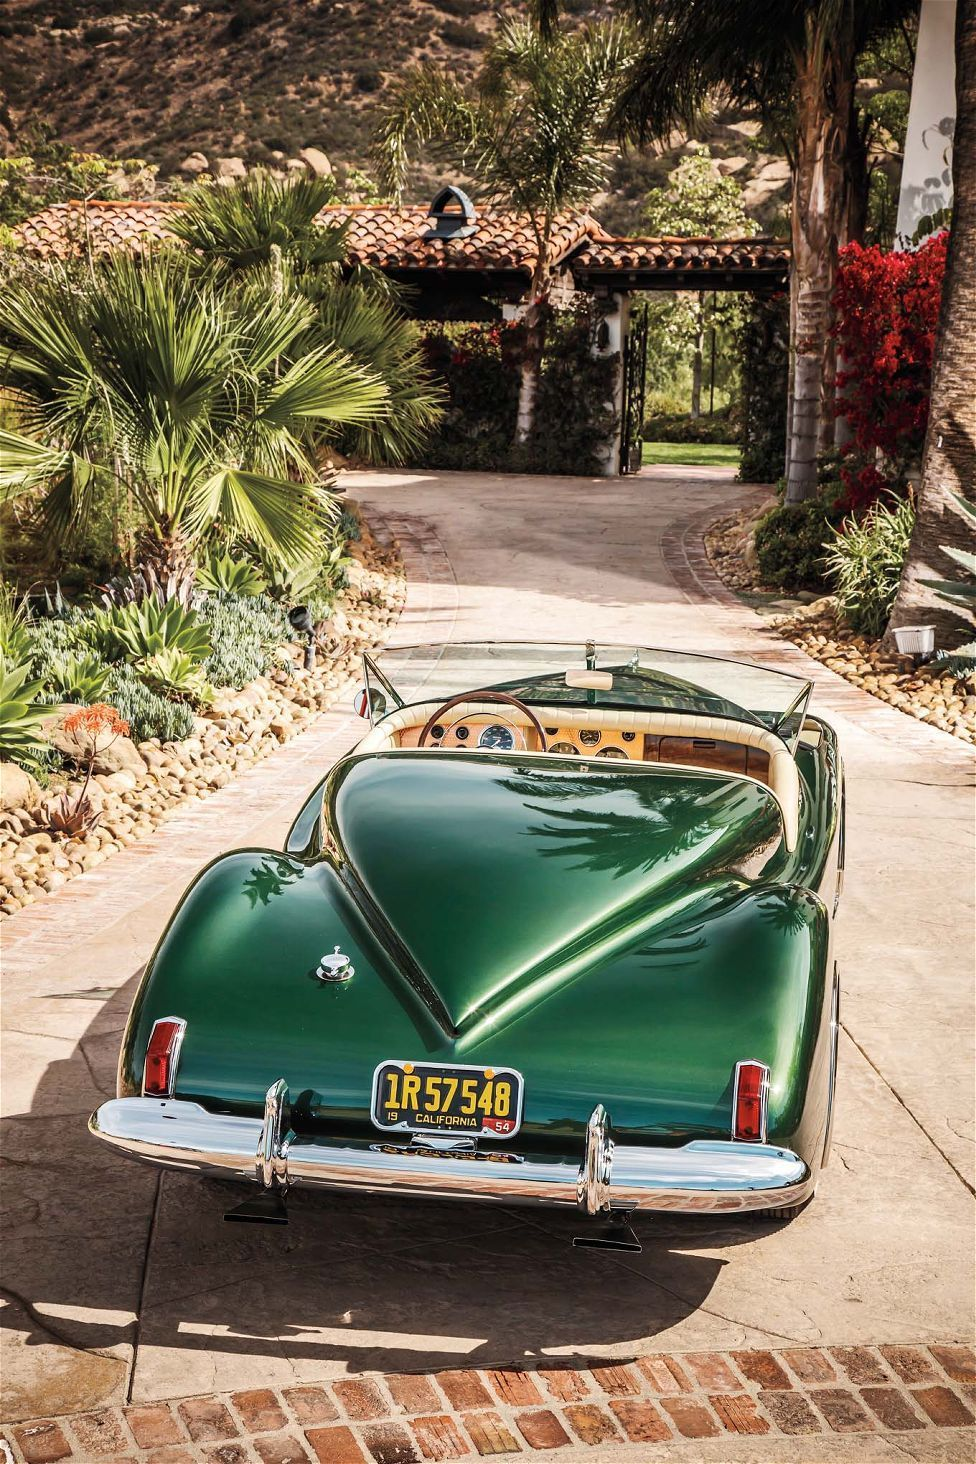 1952 Maverick Sportster Classic Drive Photo Gallery – Motor Trend  – 1952 Mave…